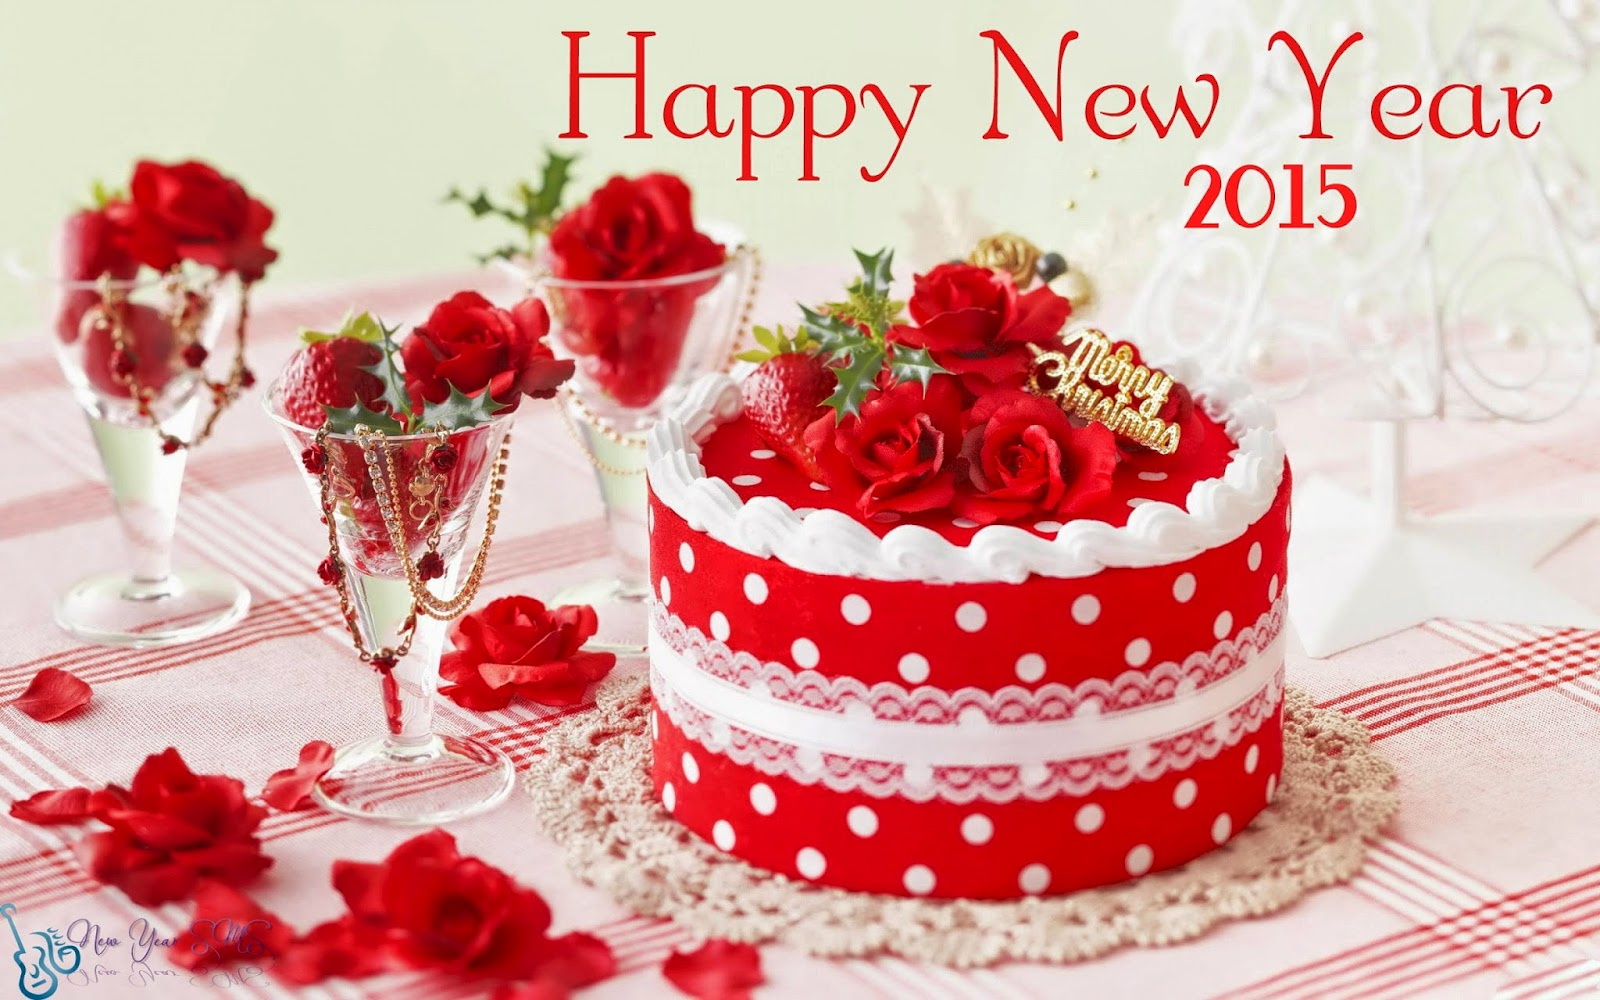 5 Ways To Celebrate New Year 2015